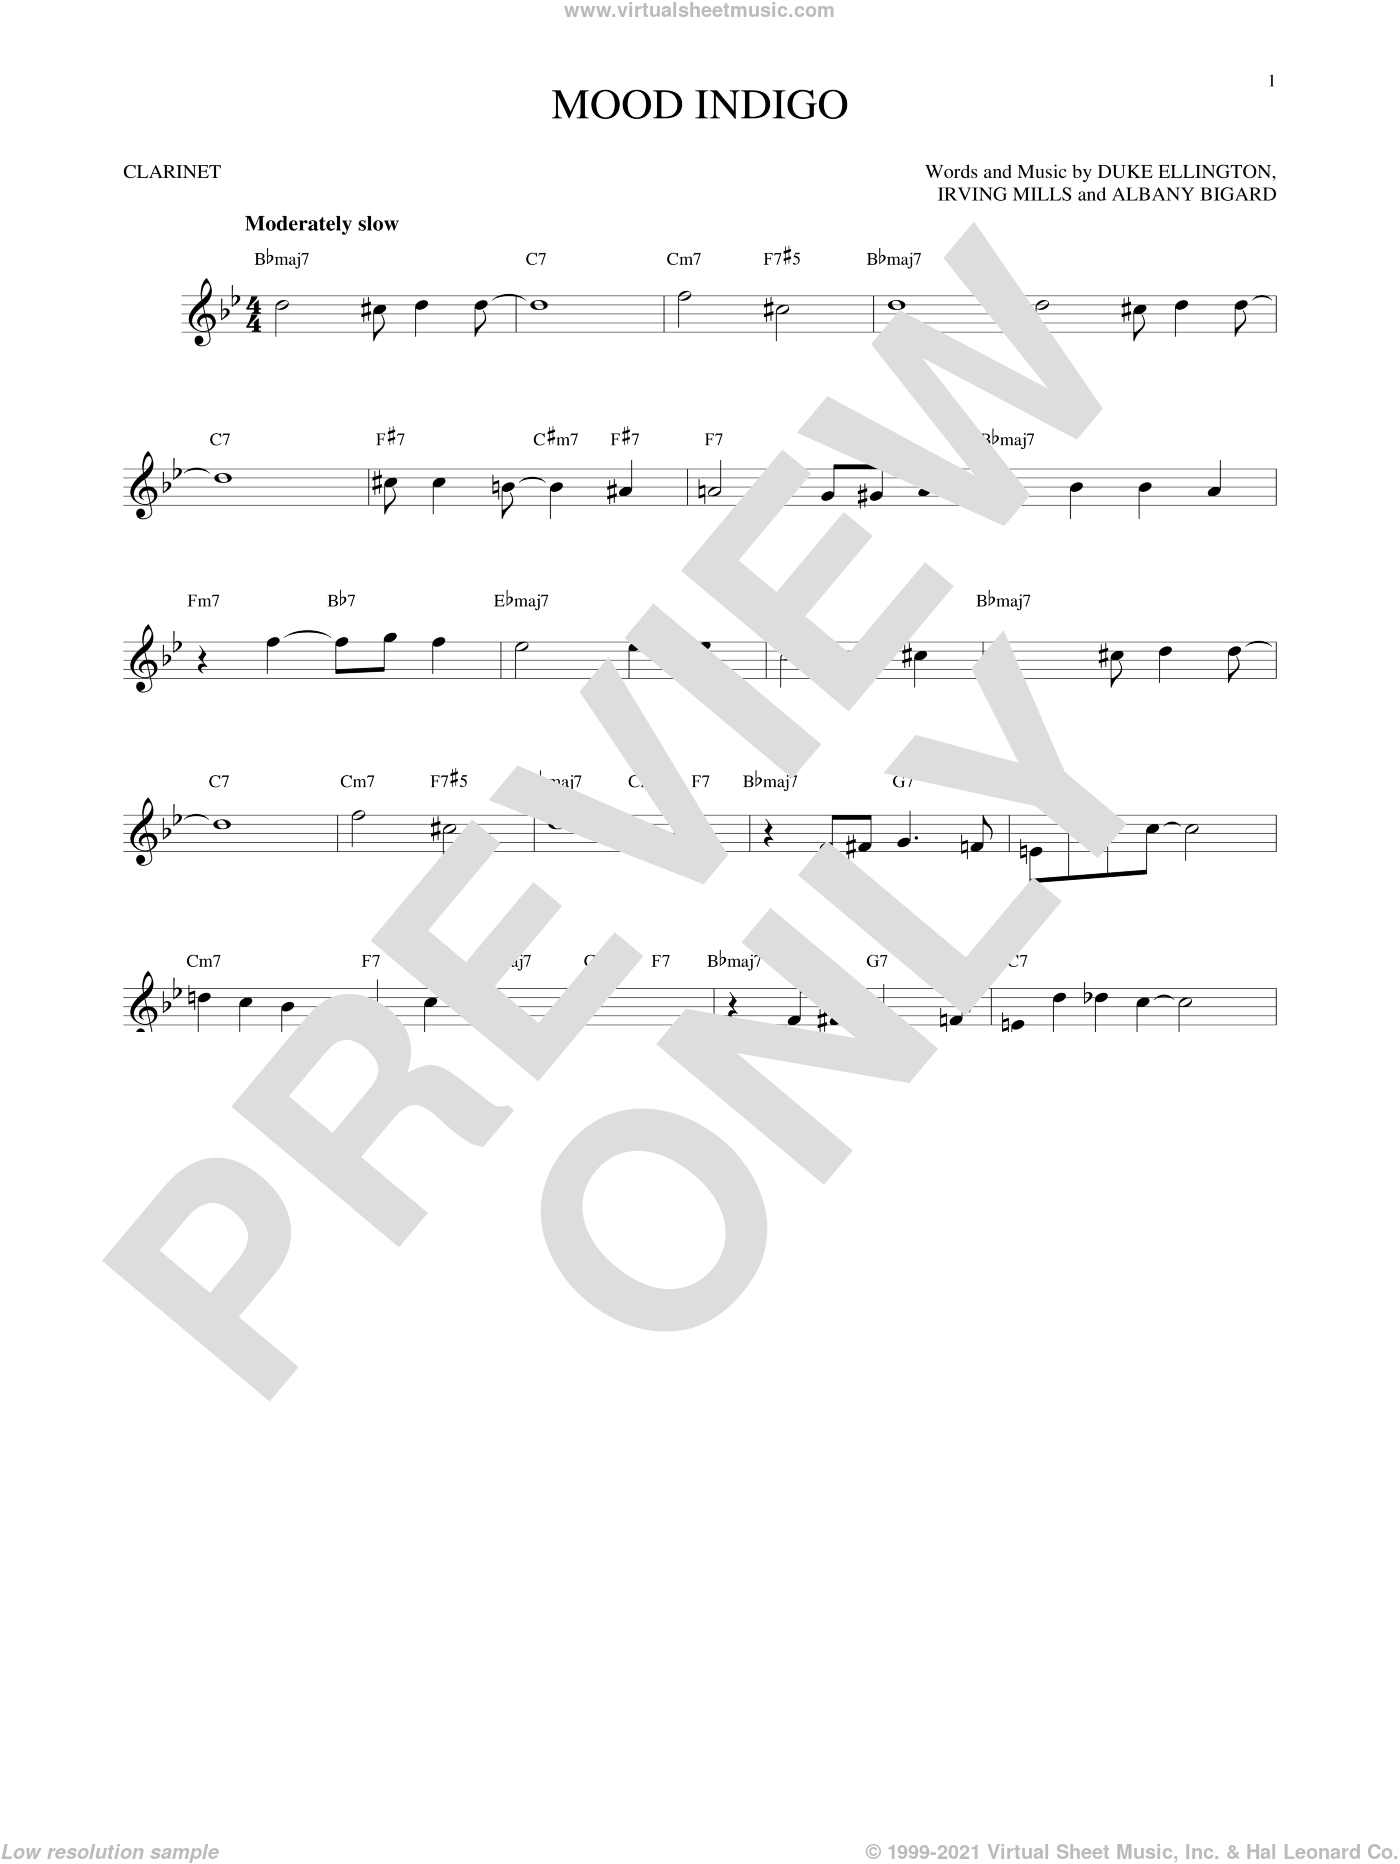 Mood Indigo sheet music for clarinet solo by Duke Ellington, Albany Bigard and Irving Mills, intermediate skill level